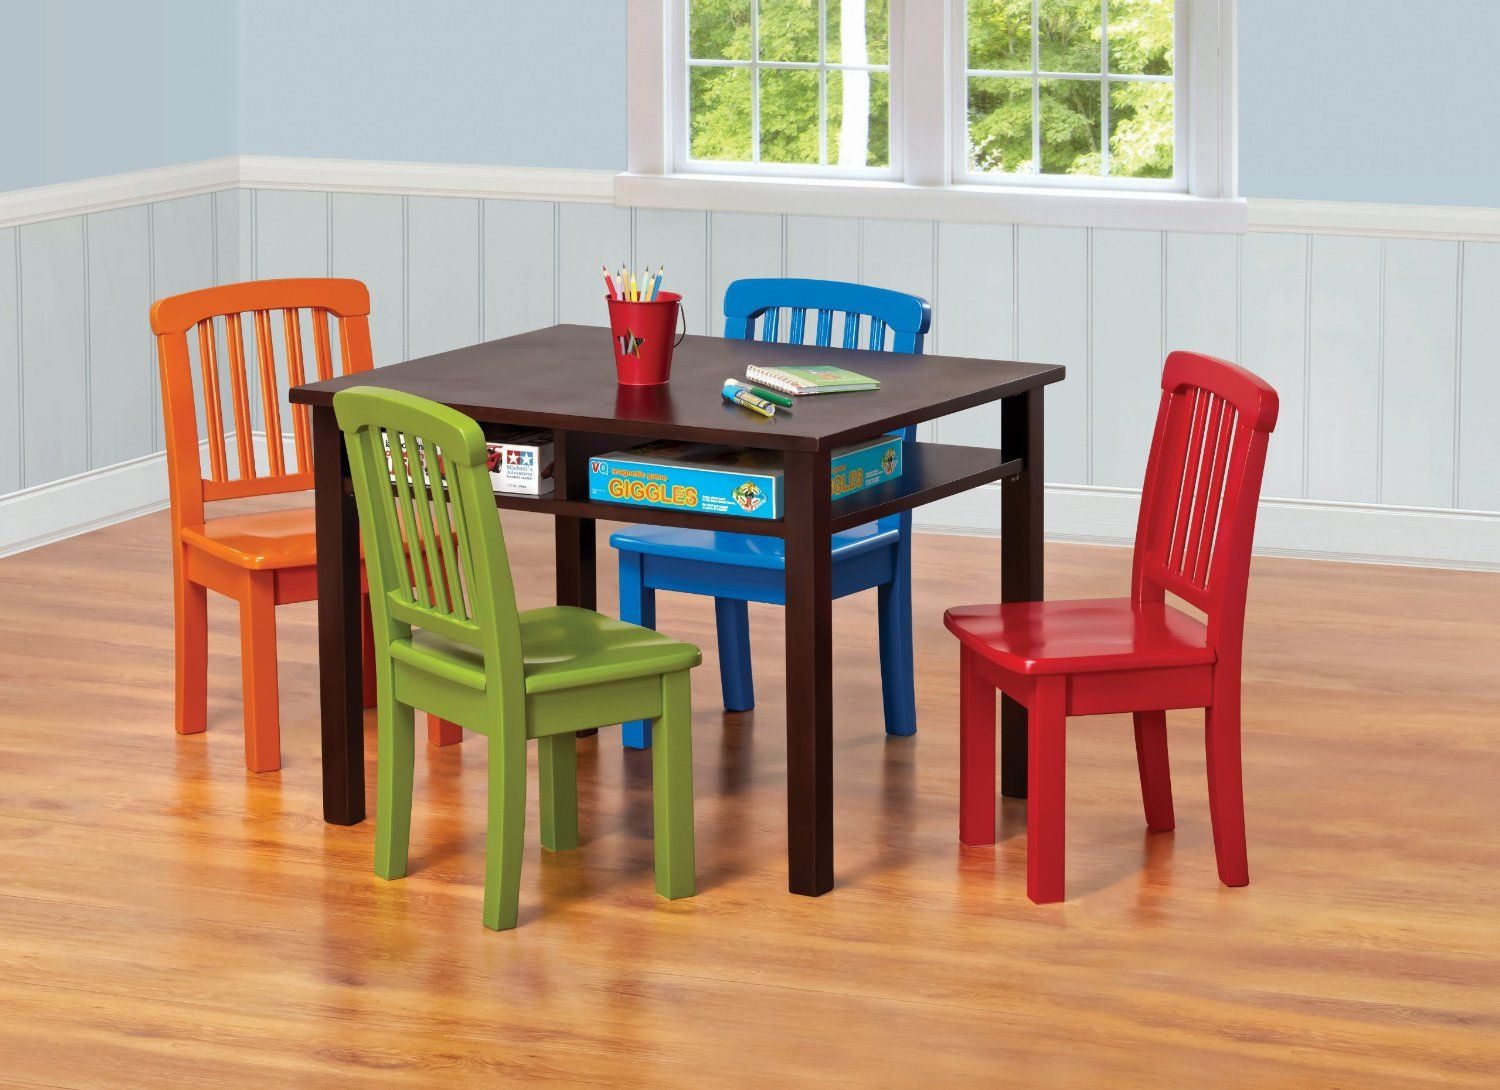 Ukid Rectangle Children's Game Table with 4 Chairs